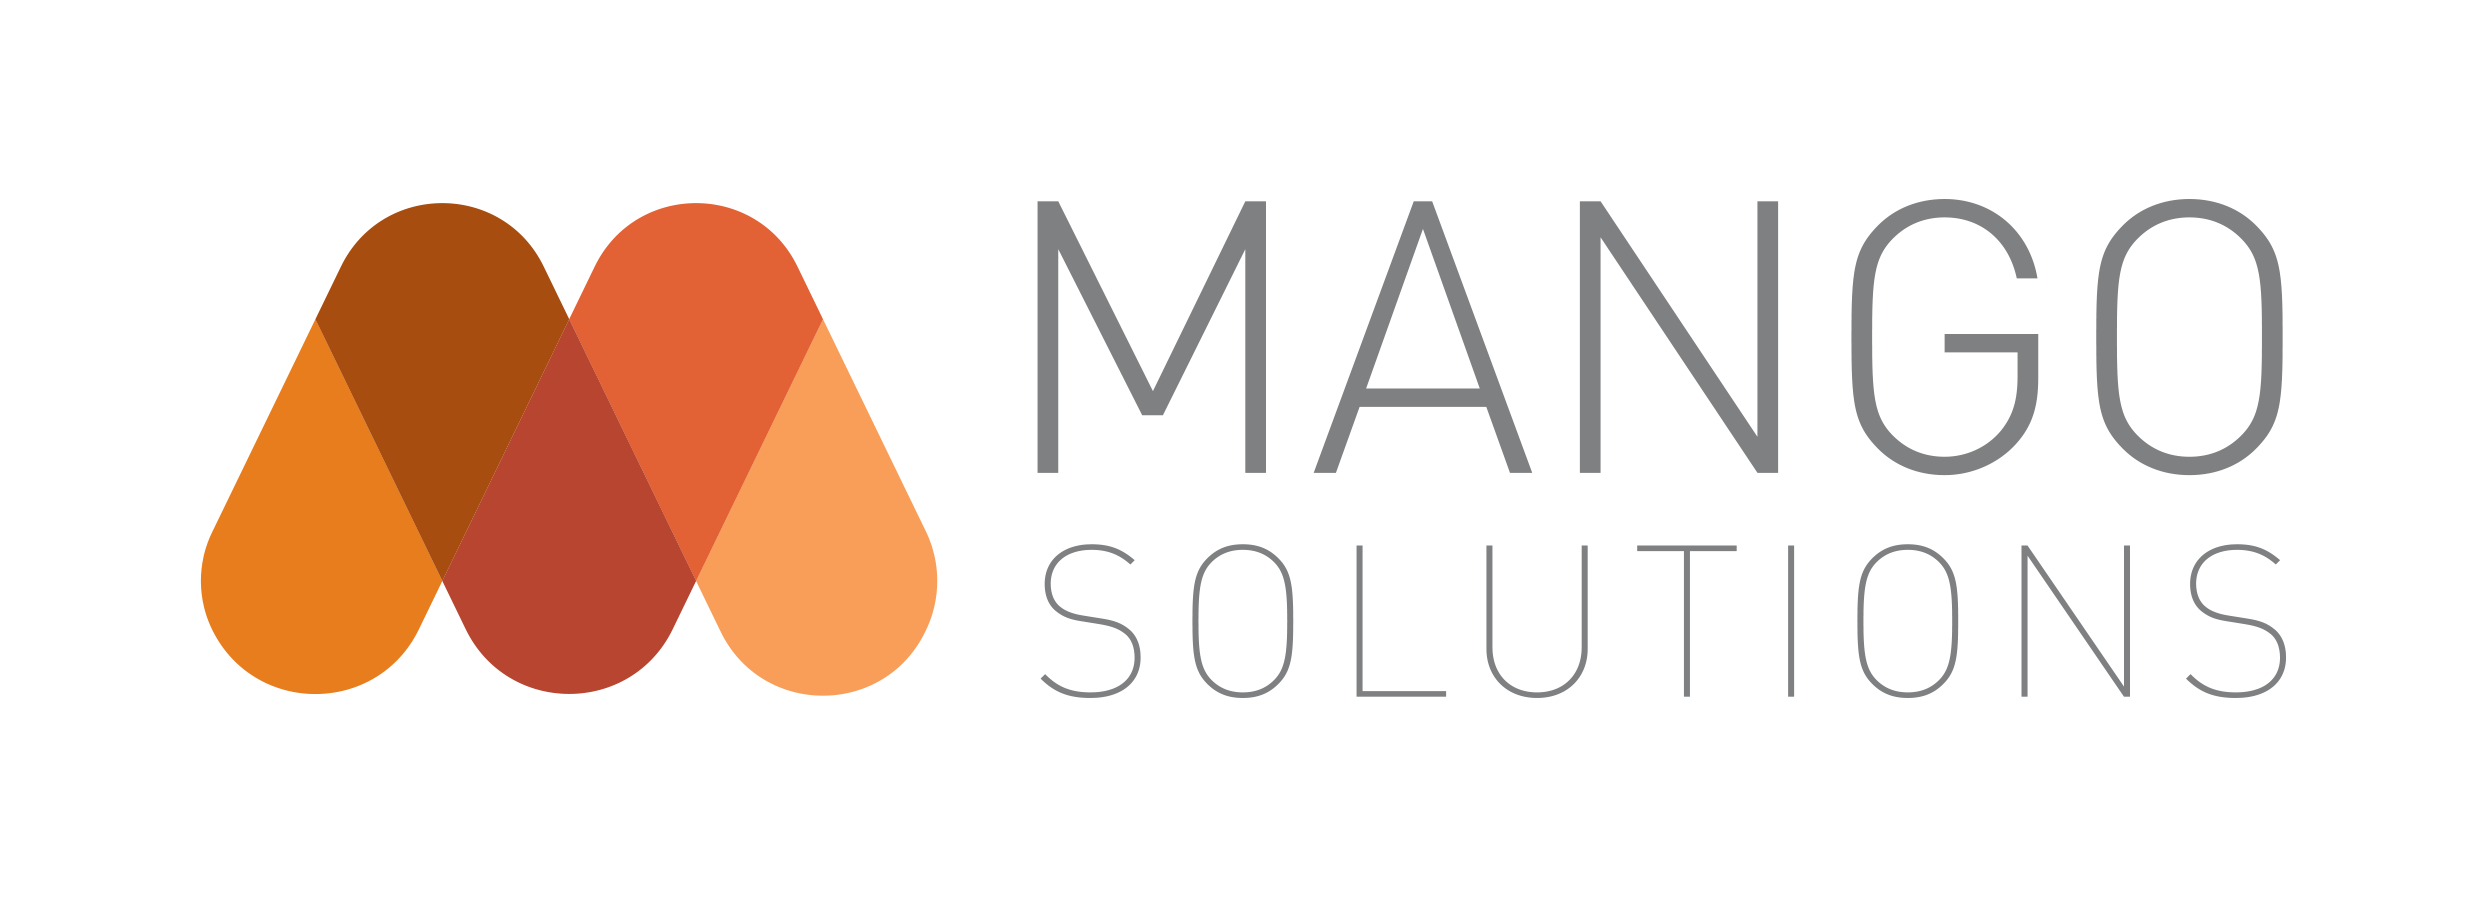 Mango Solutions name